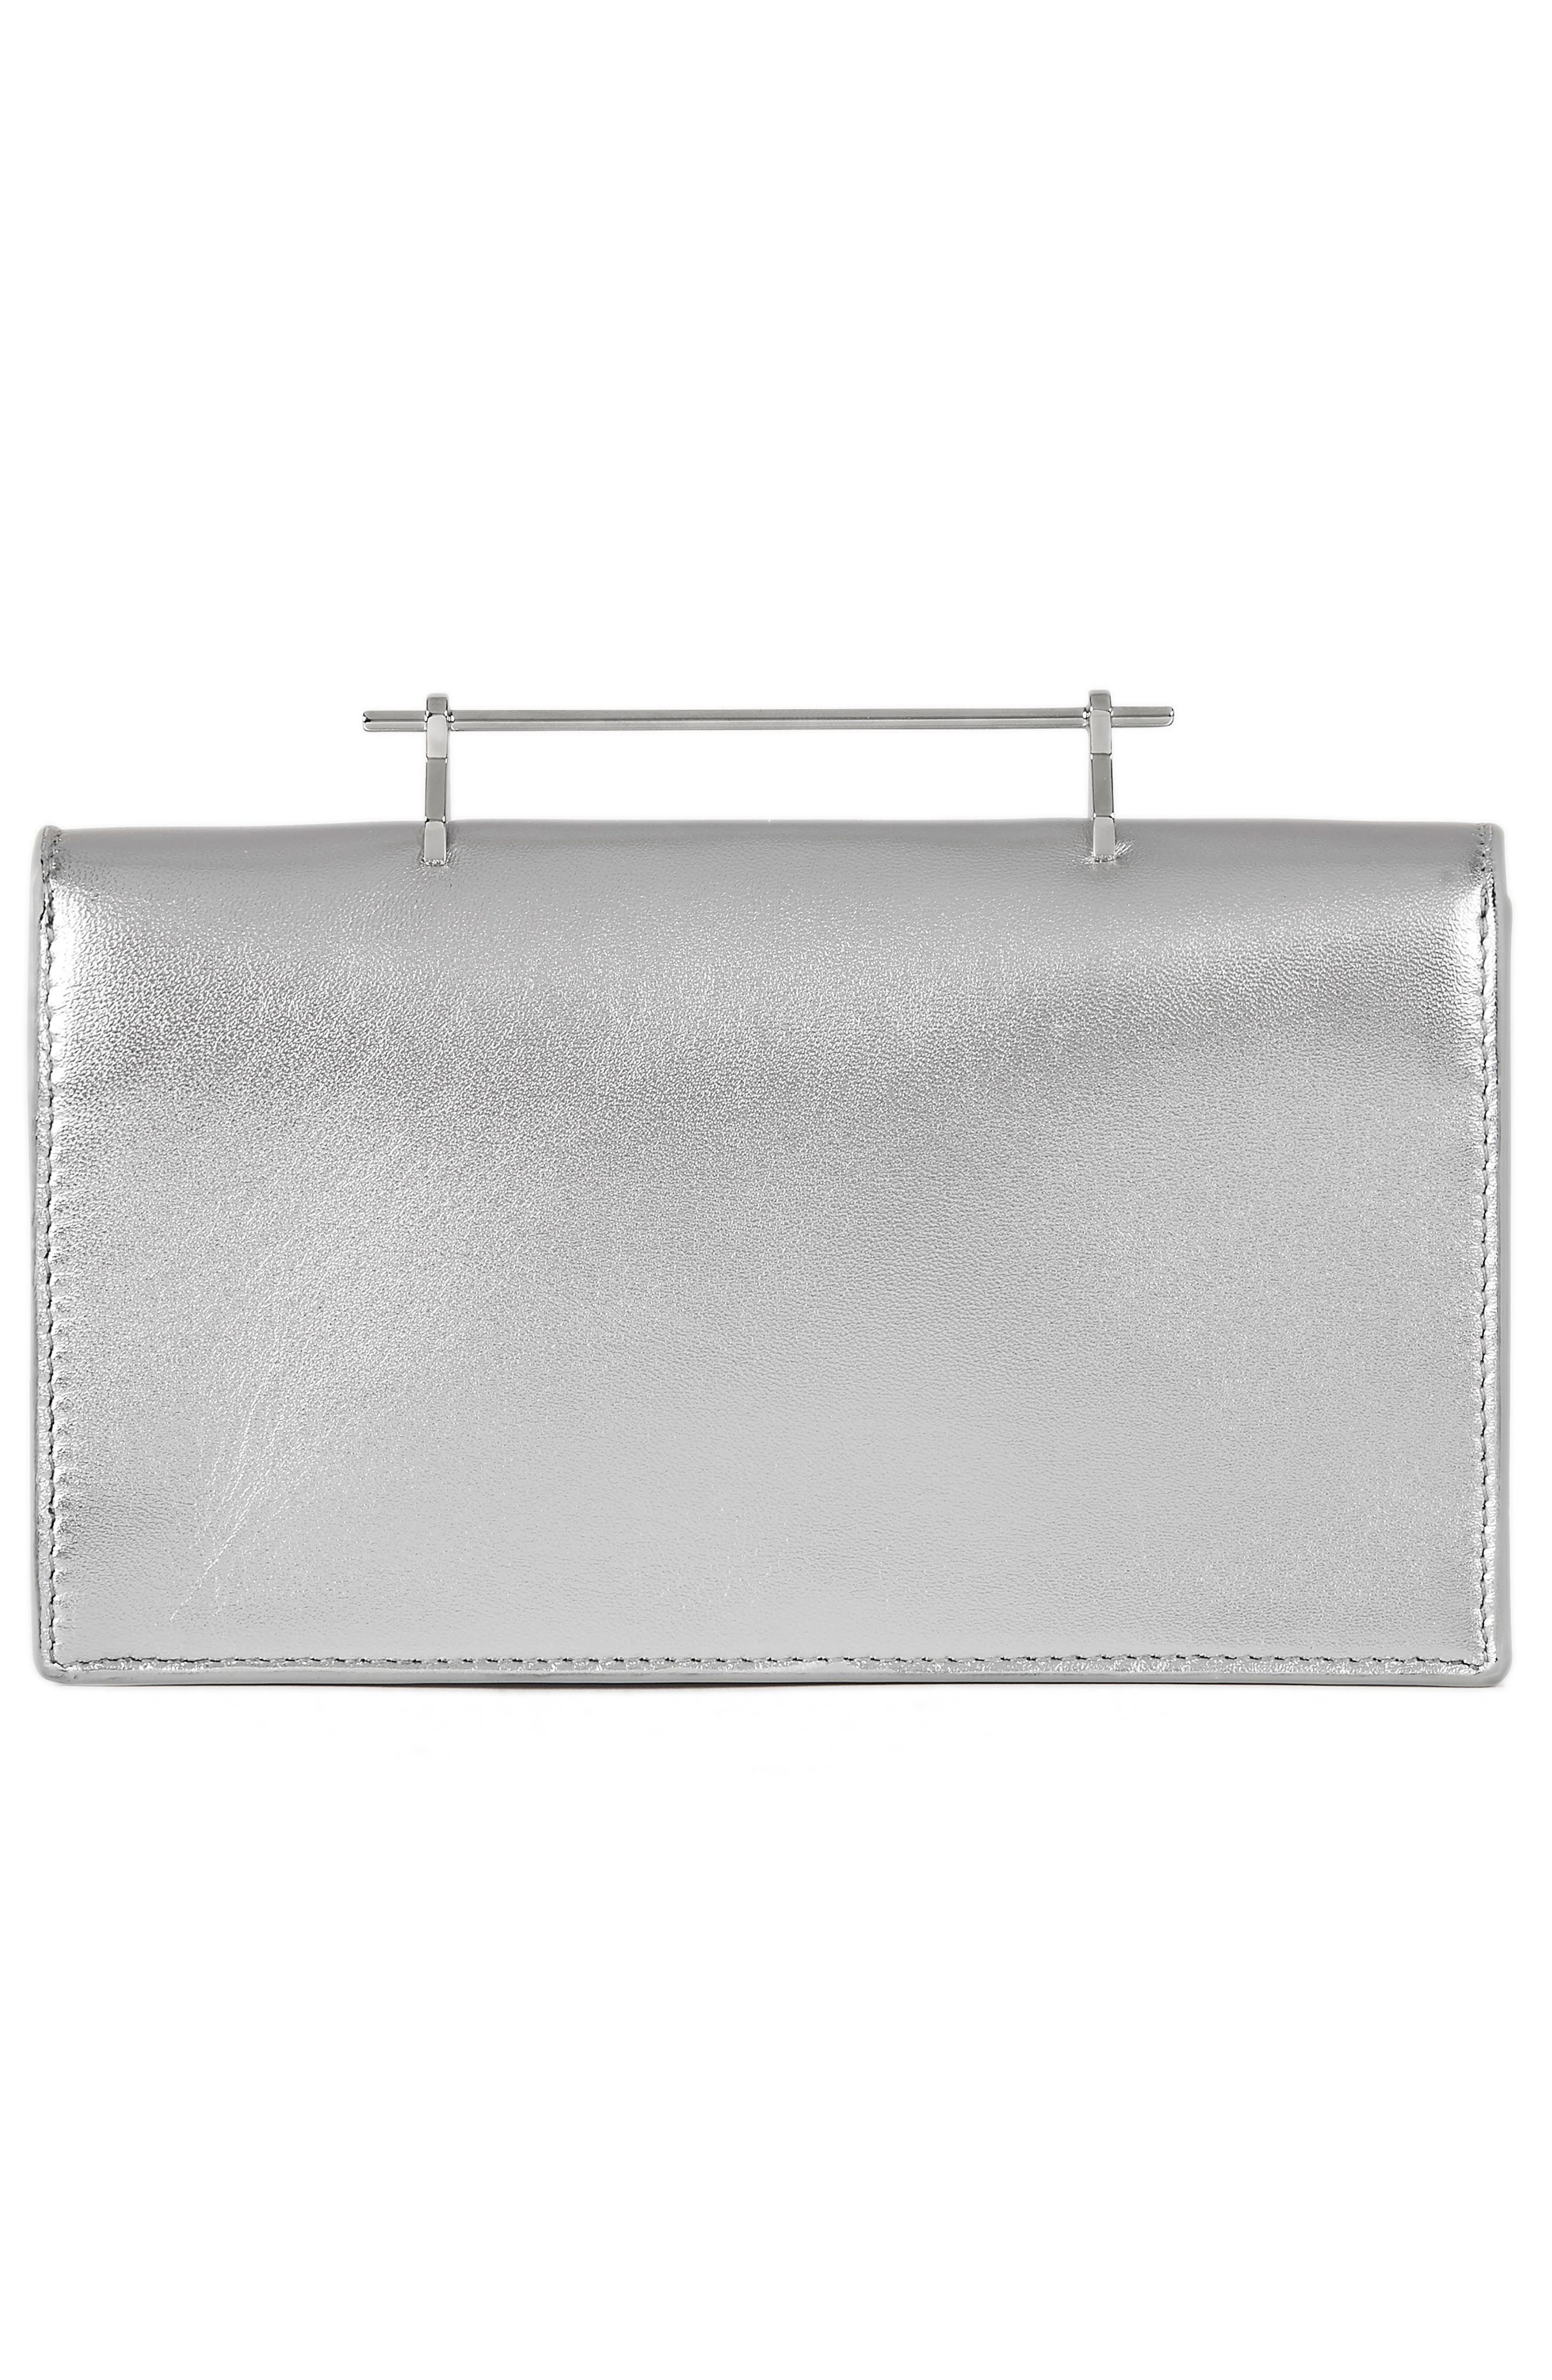 Alexia Metallic Leather Shoulder Bag,                             Alternate thumbnail 2, color,                             040